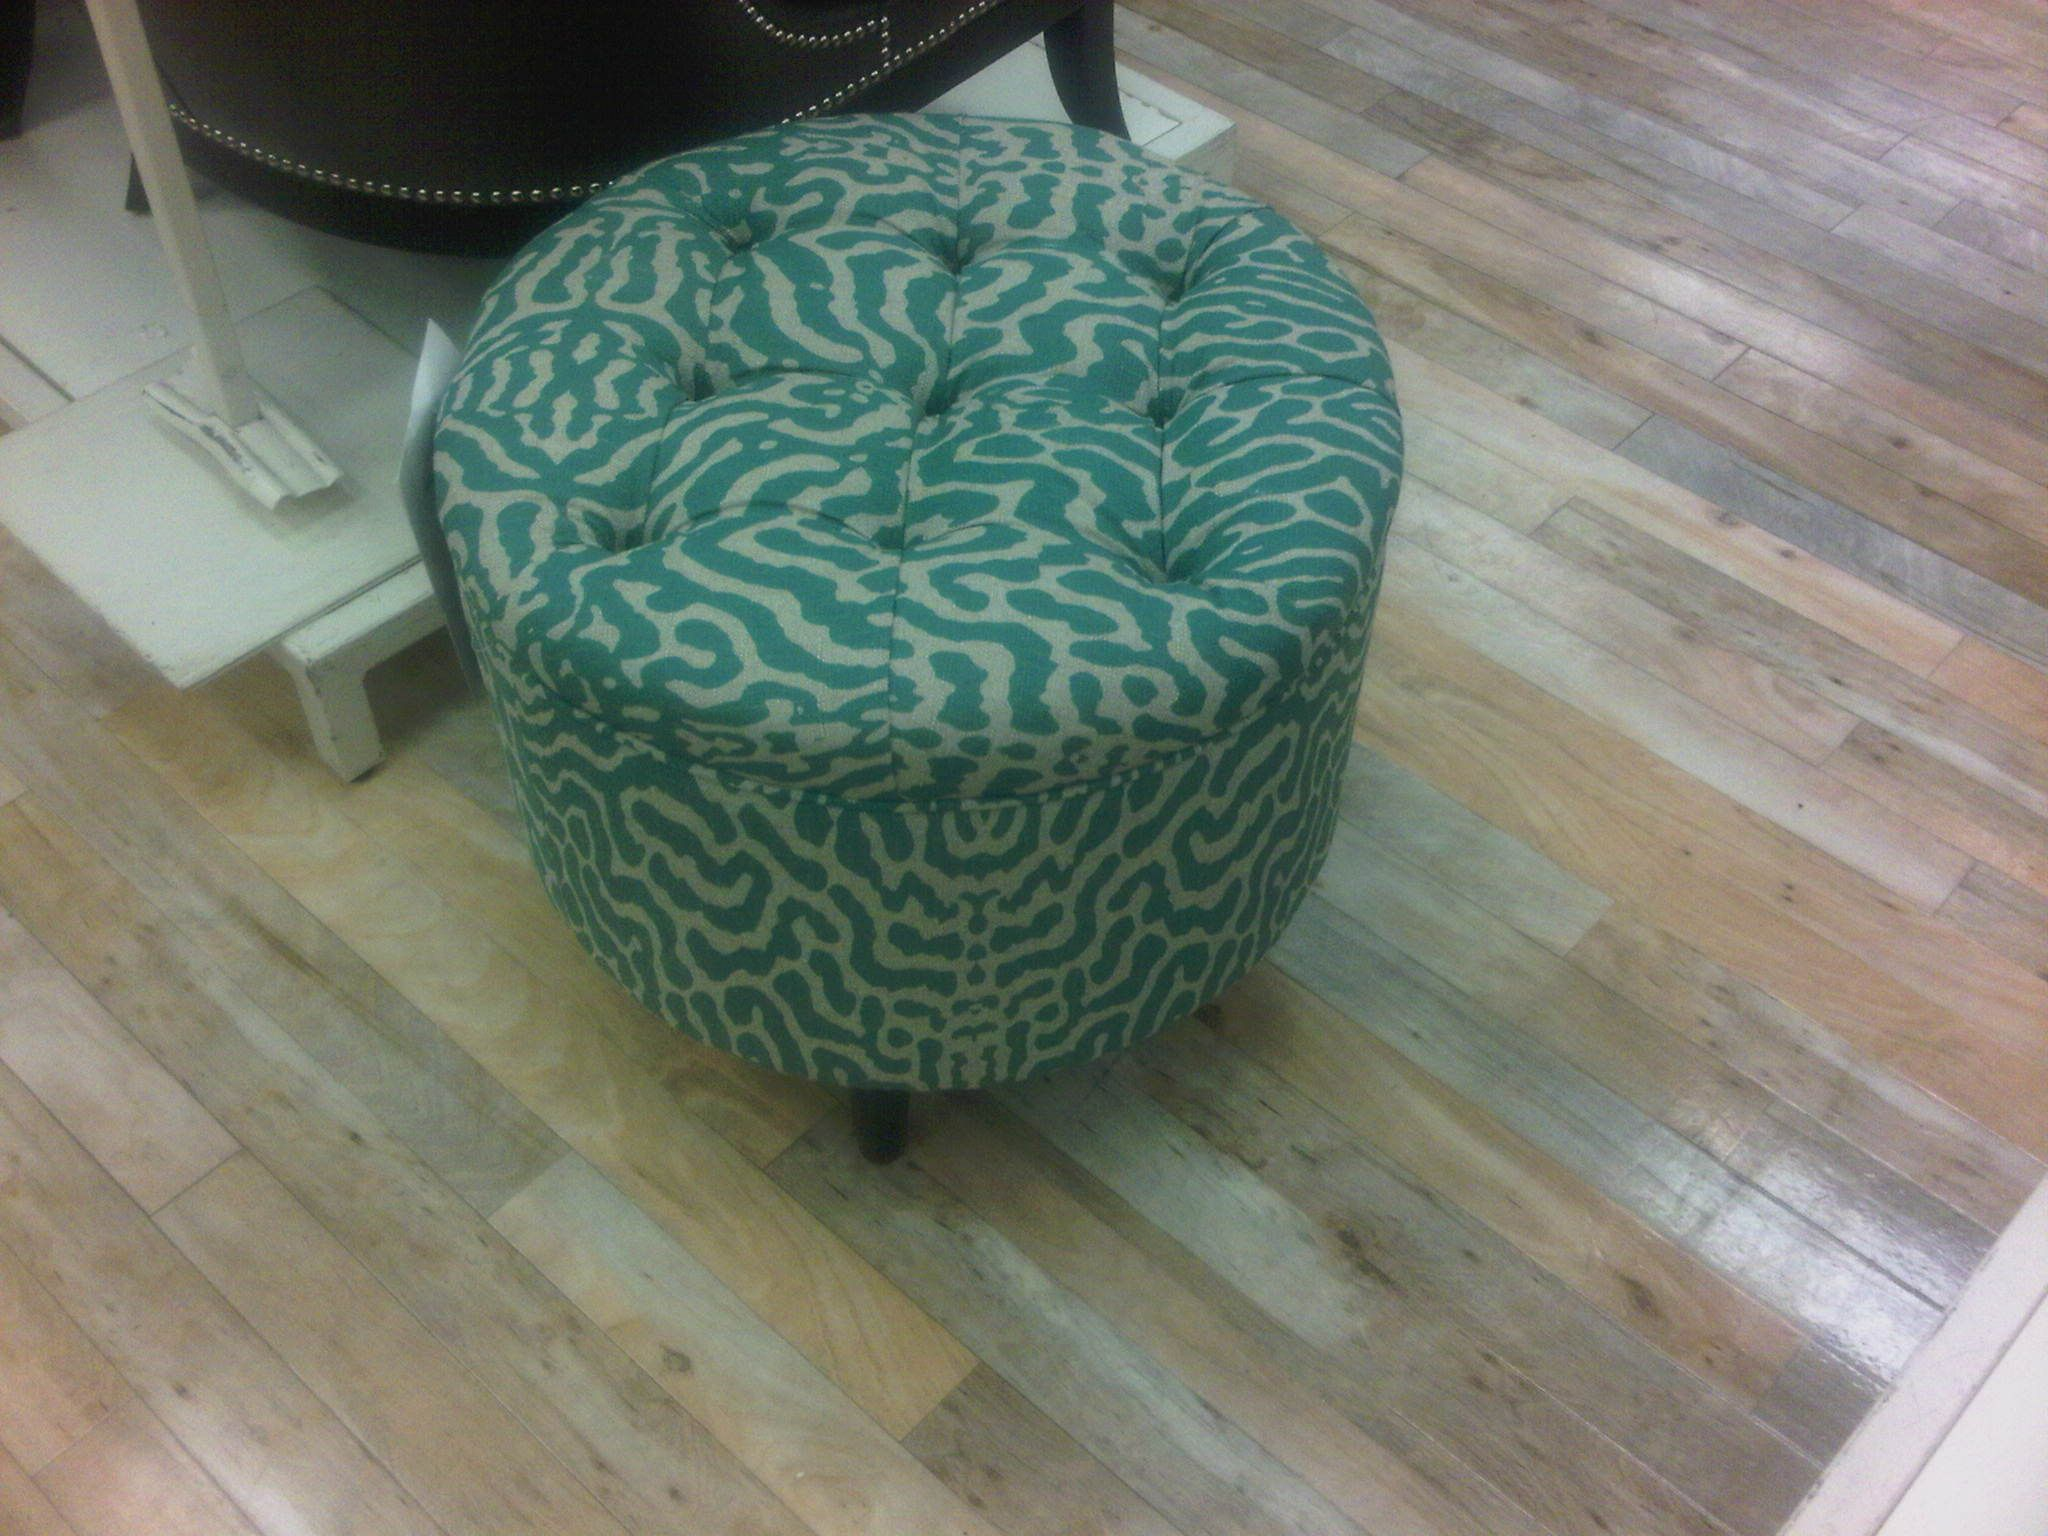 Homesense Accent Chairs Teal Tufted Ottoman Homesense Potential Living Room